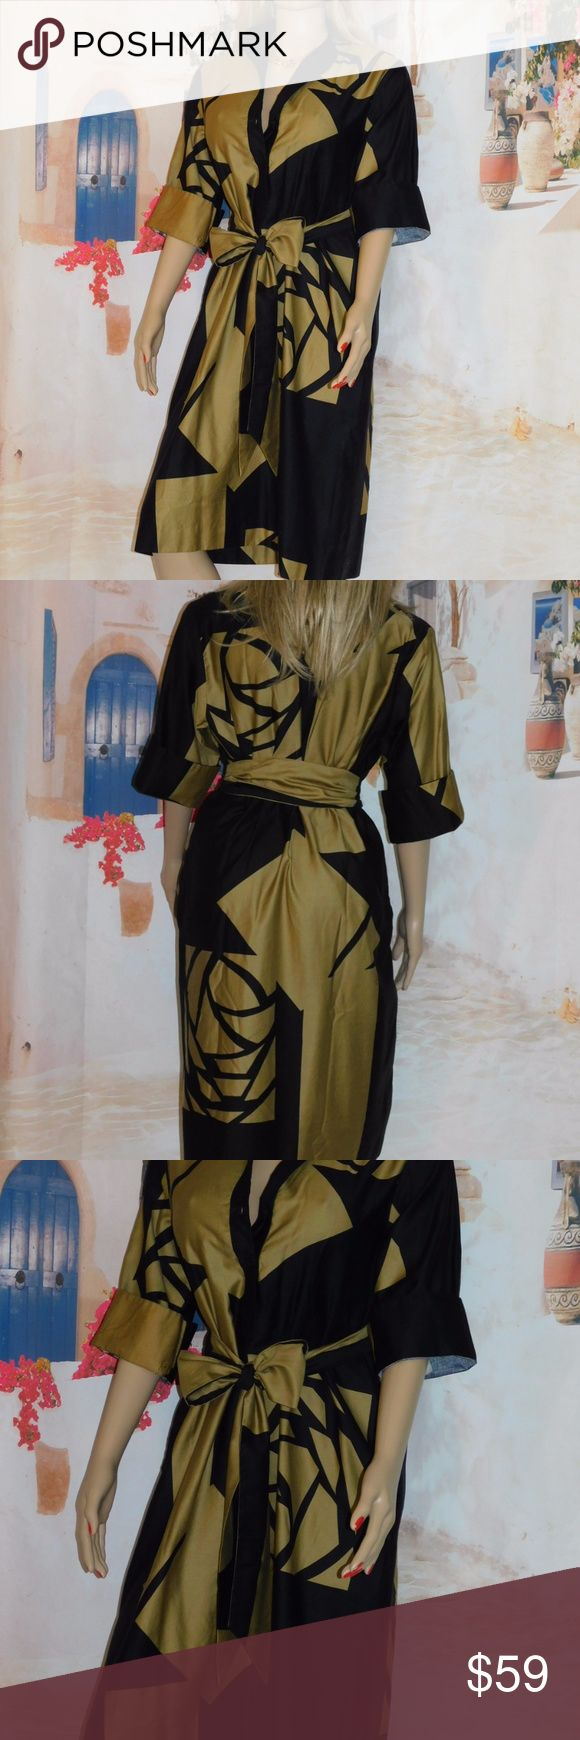 """Catherine Ogust Penthouse Gallery Forever Dress 100% Cotton dress in stunning bronze and black, free fitting with matching OBI belt  Excellent Condition bust to 23"""" flat x 2 waist to 23"""" flat x 2  Hips to 24"""" flat x 2  Length 43"""" Fits medium to Large Catherine Ogust Dresses"""